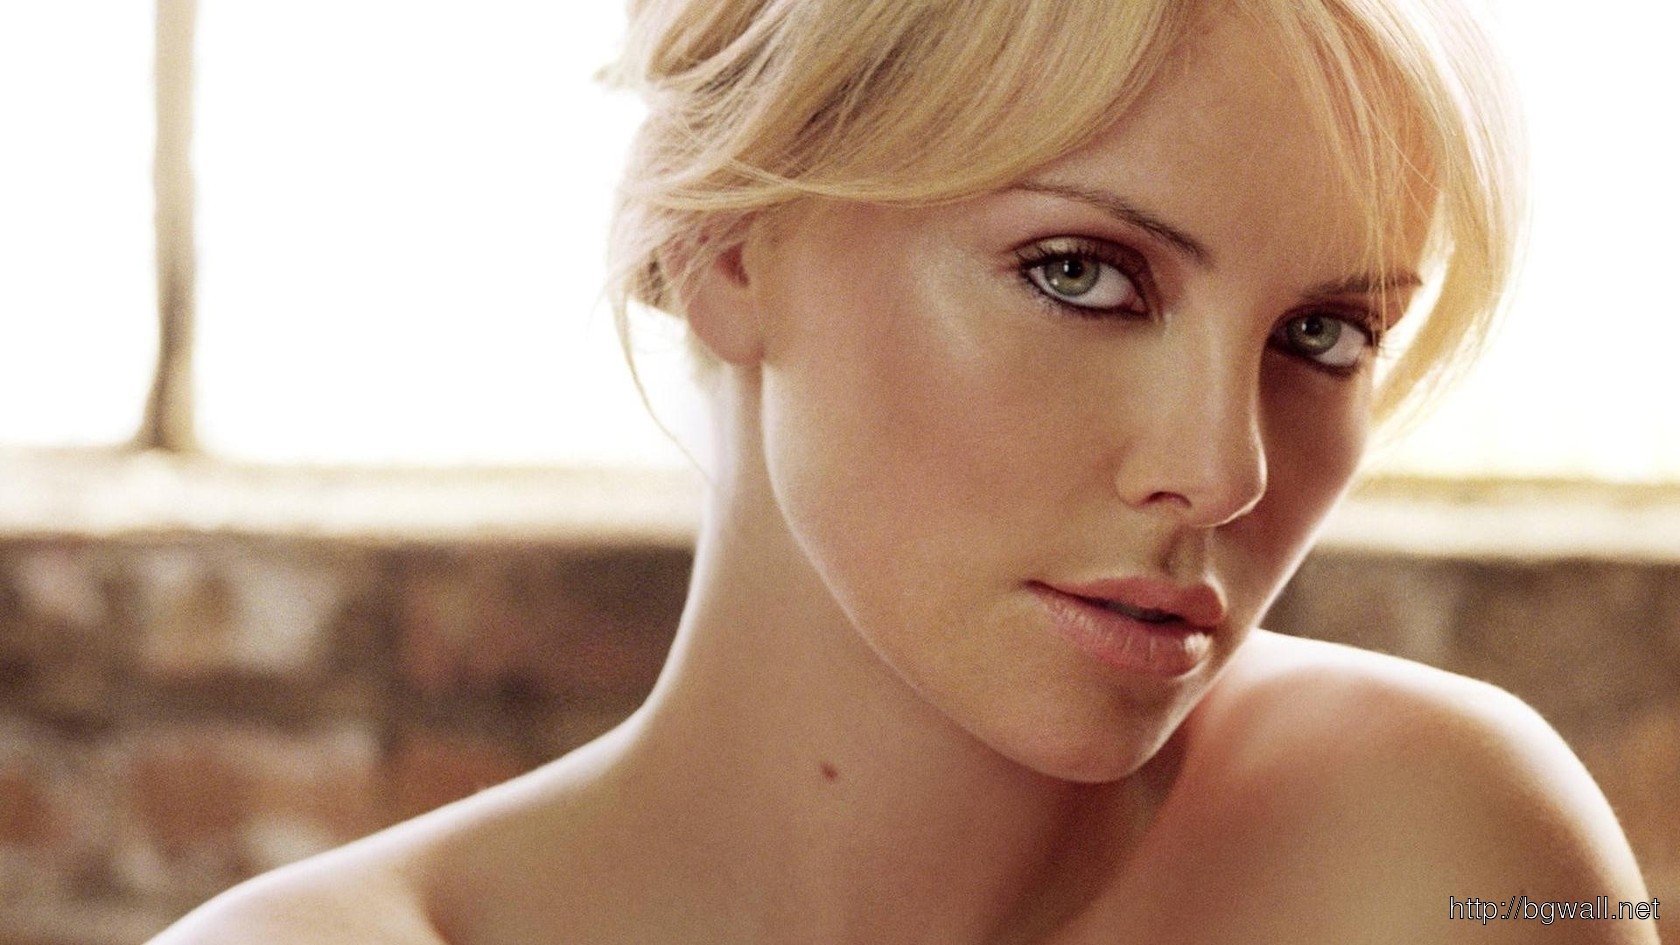 Charlize Theron Wallpaper 3895 Full Size